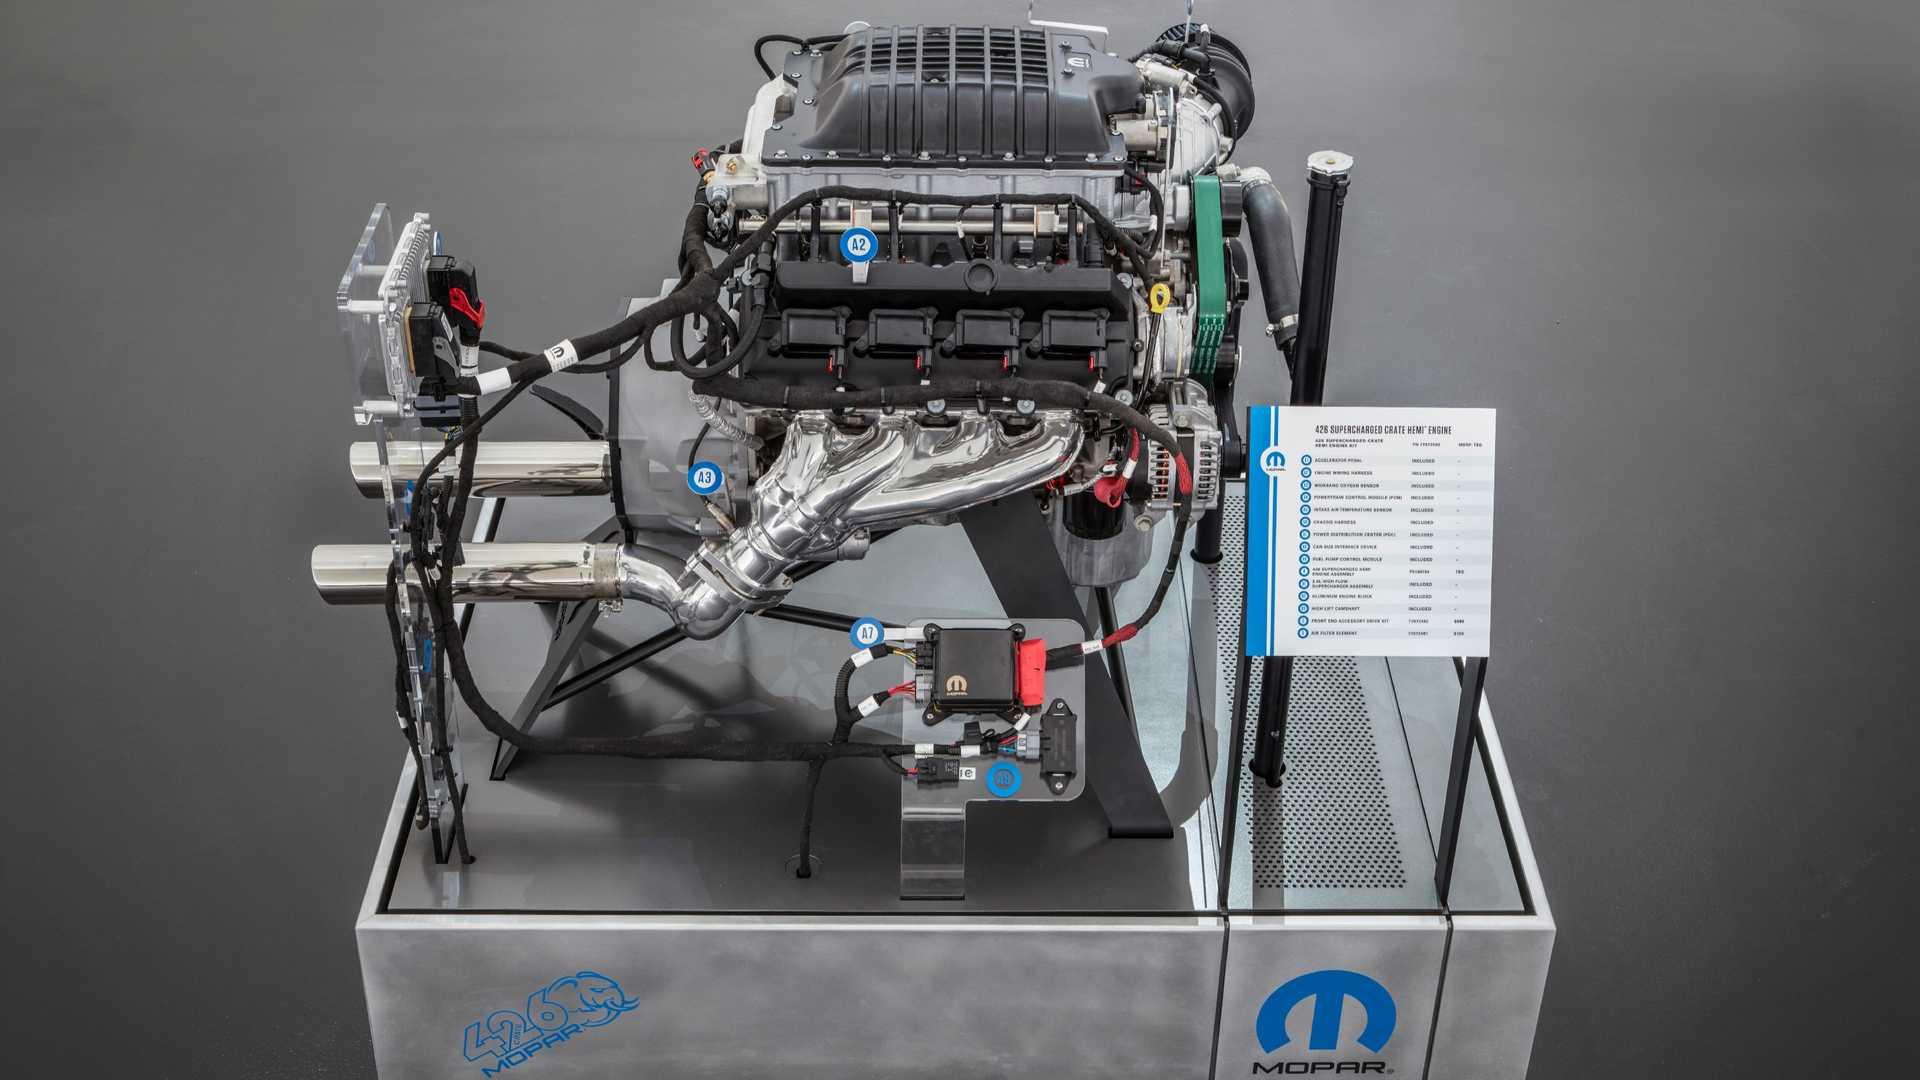 Dodge Now Taking Pre-Orders for 1000-HP Hellephant Crate Engine